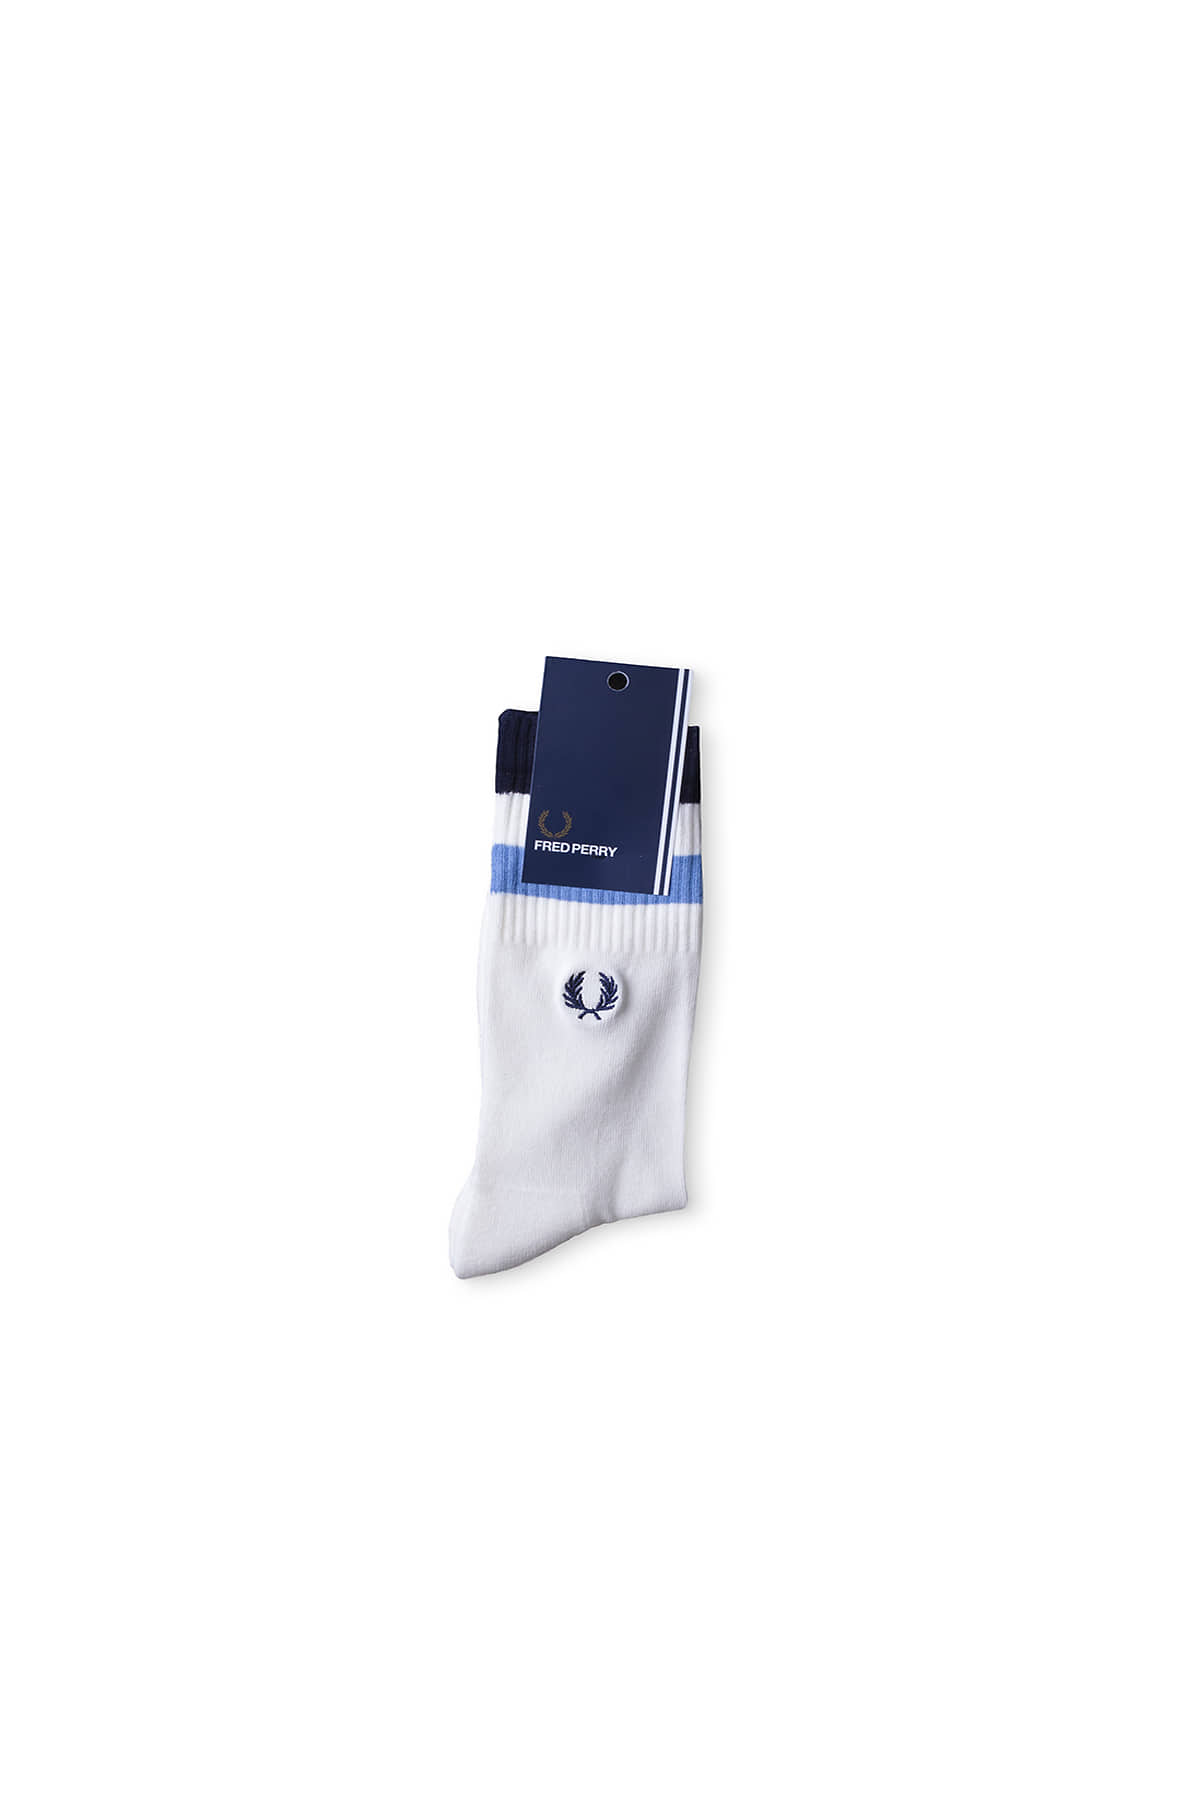 FRED PERRY  : Tipped Sports Socks (Snow White/Navy)